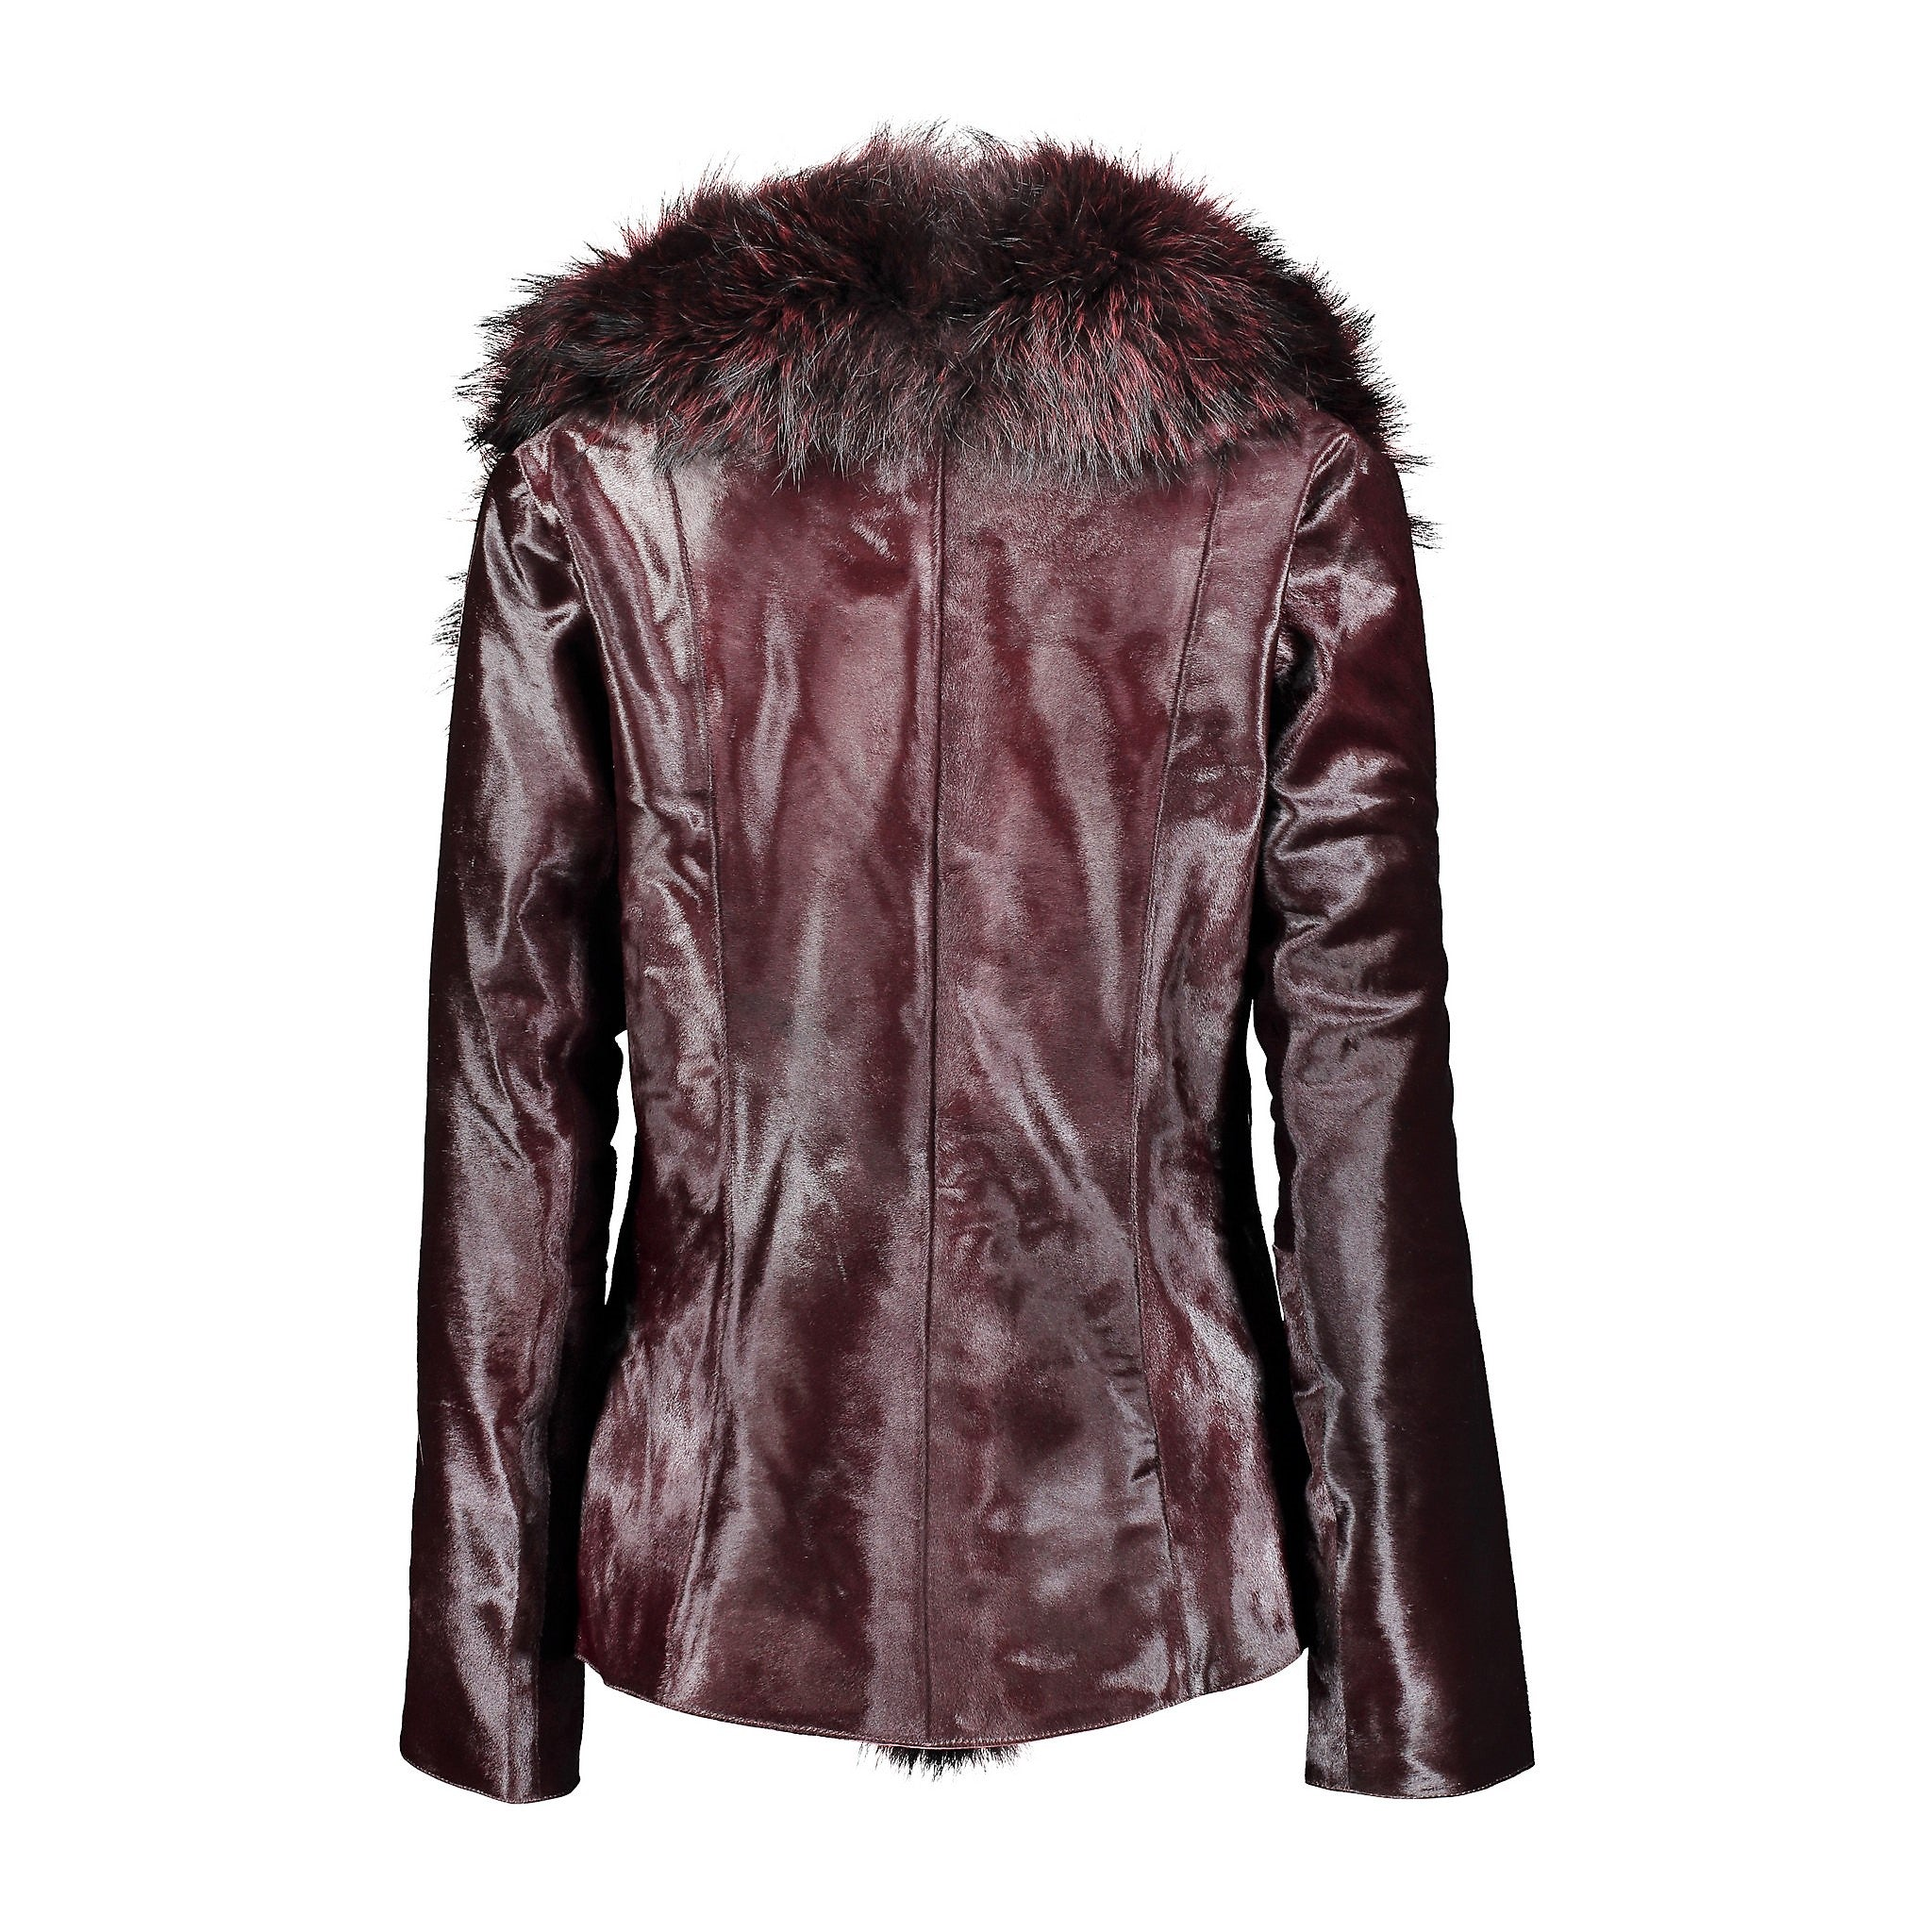 Teri Calf Leather Jacket